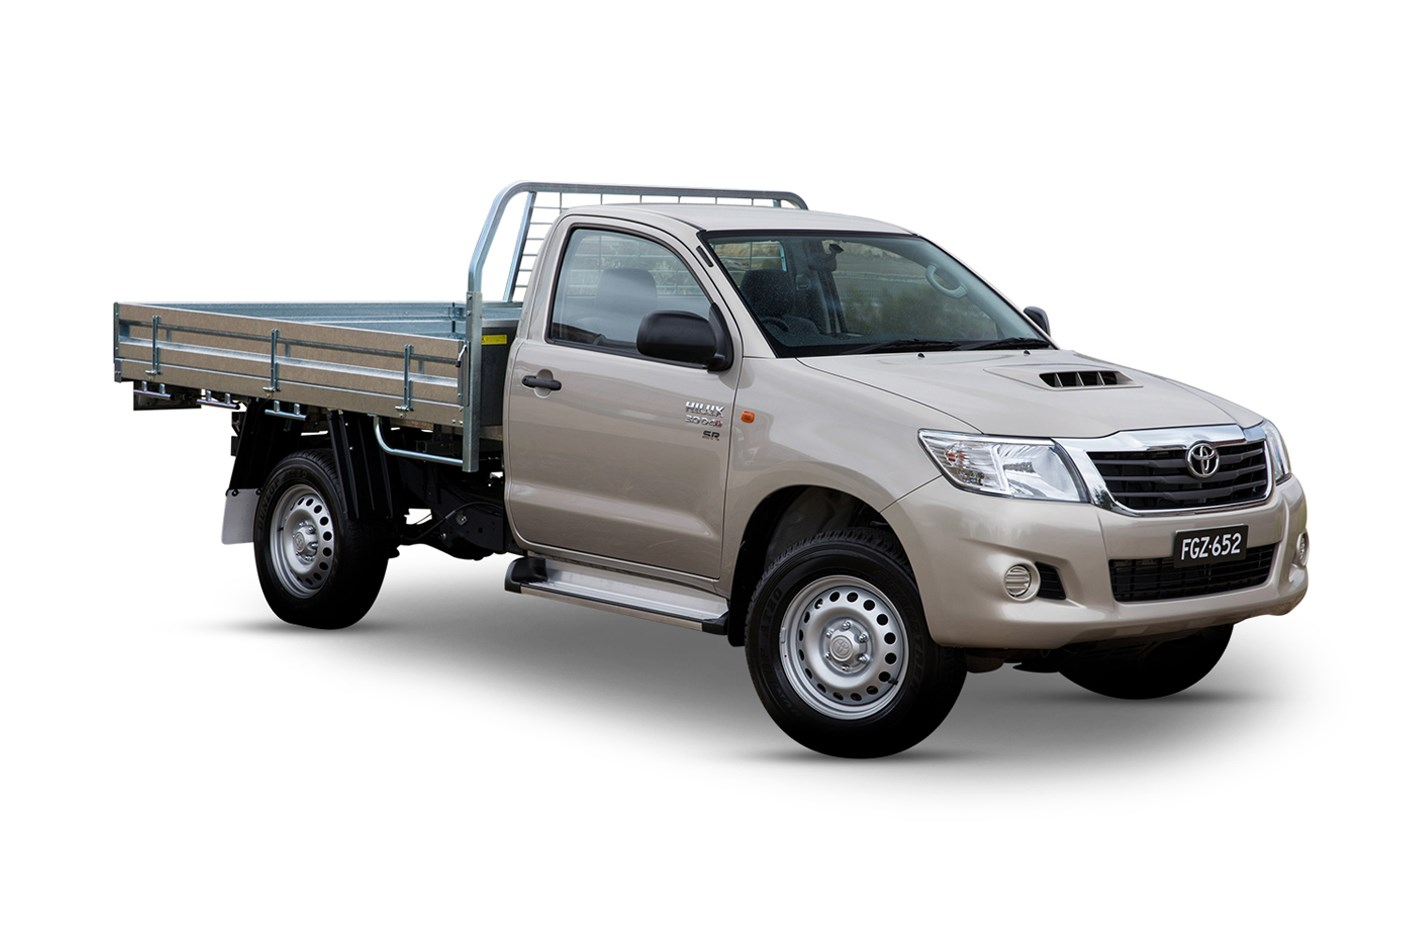 2017 toyota hilux sr (4x4), 2.8l 4cyl diesel turbocharged manual